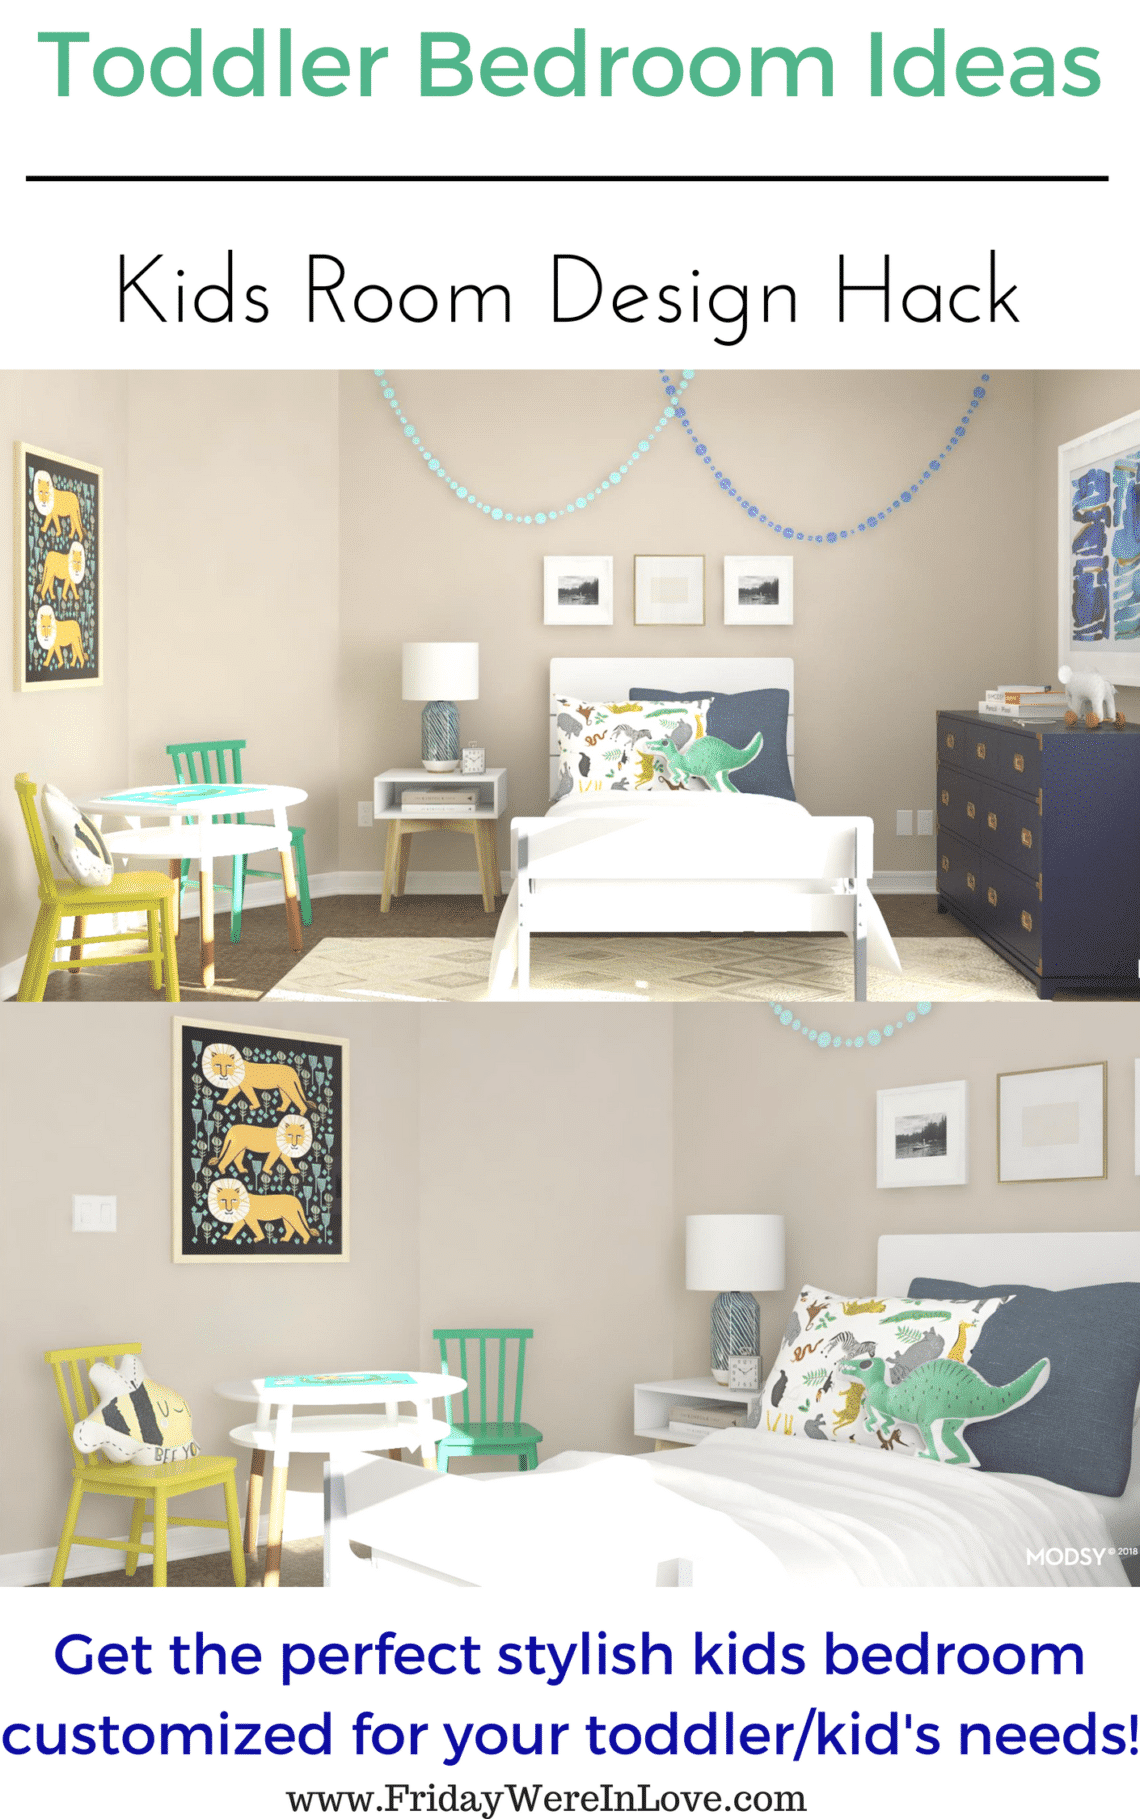 Toddler Bedroom Ideas And Amazing Kids Room Design Friday We Re In Love